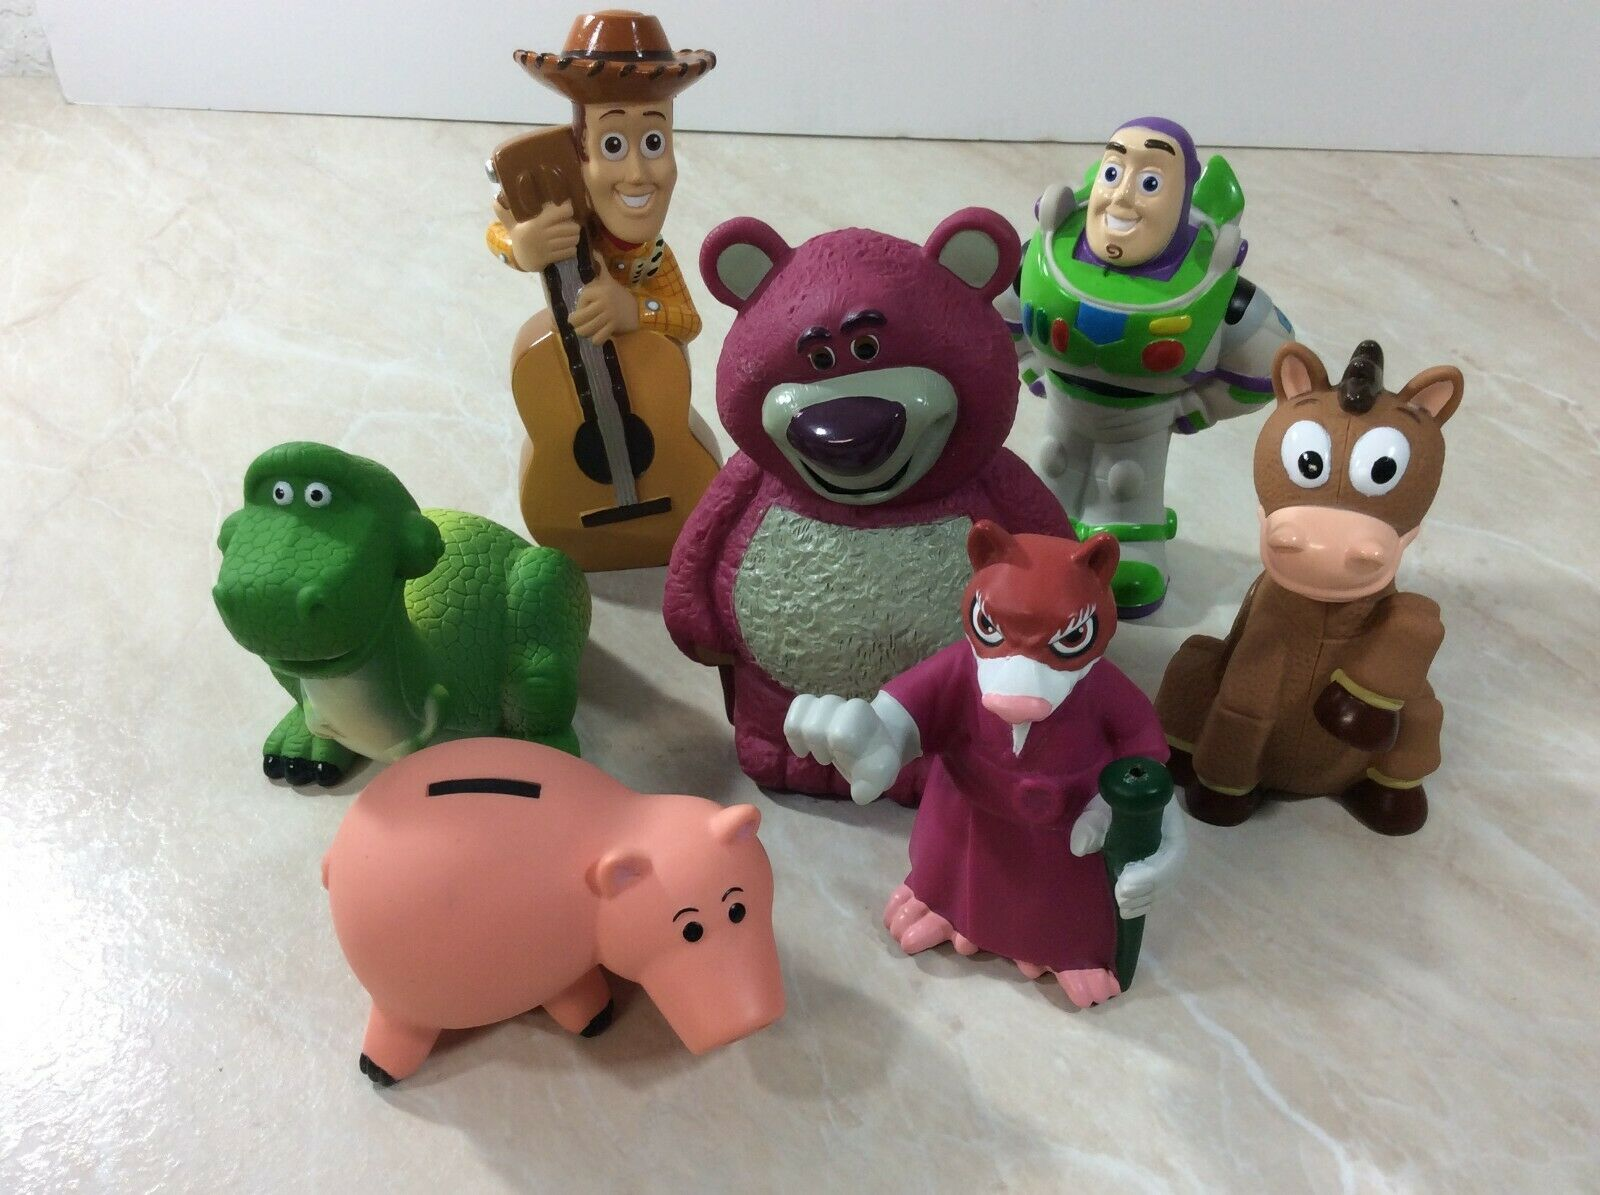 Disney Toy Story Figures with Carrying Bag 2014 Pixar Woody Buzz Hamm Lot of 7 image 2